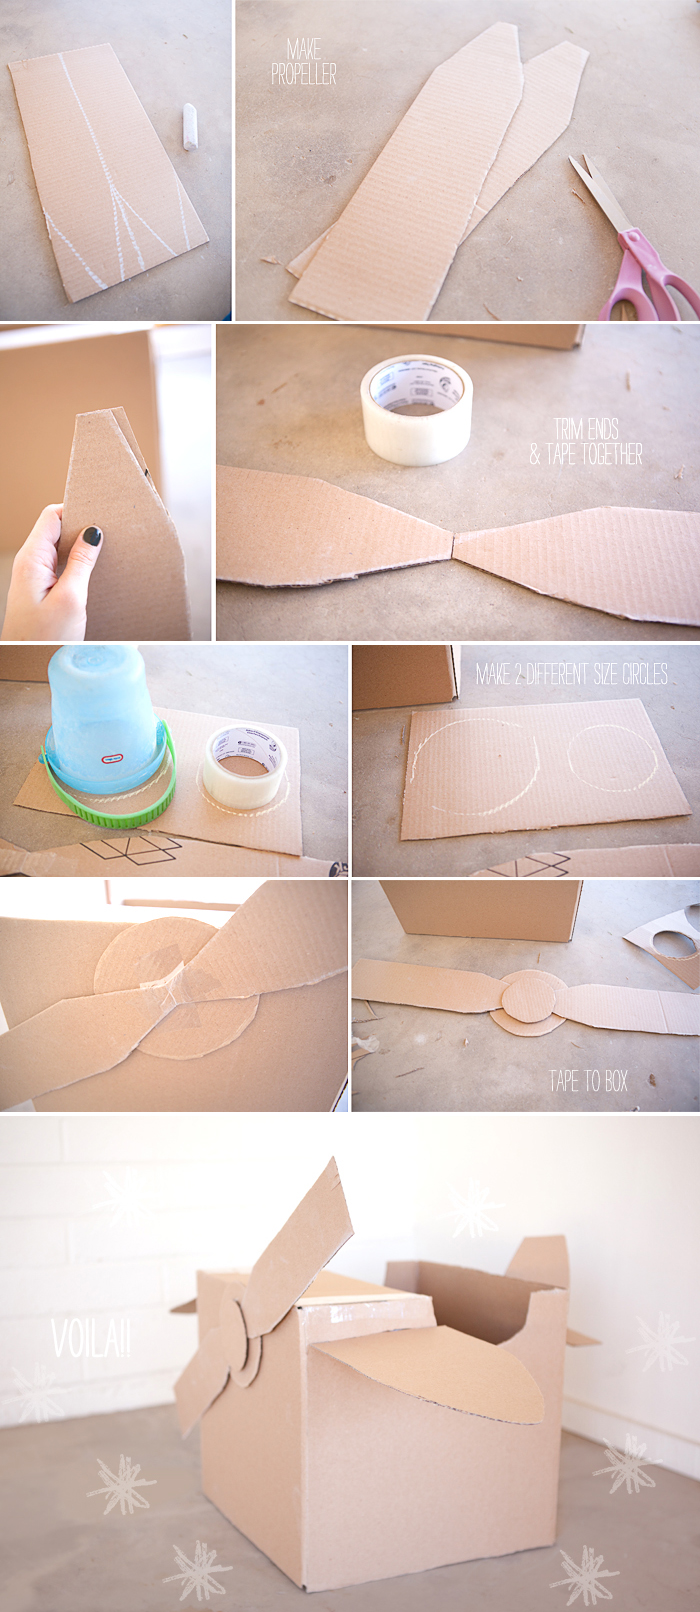 DIY project for kids - cardboard airplane